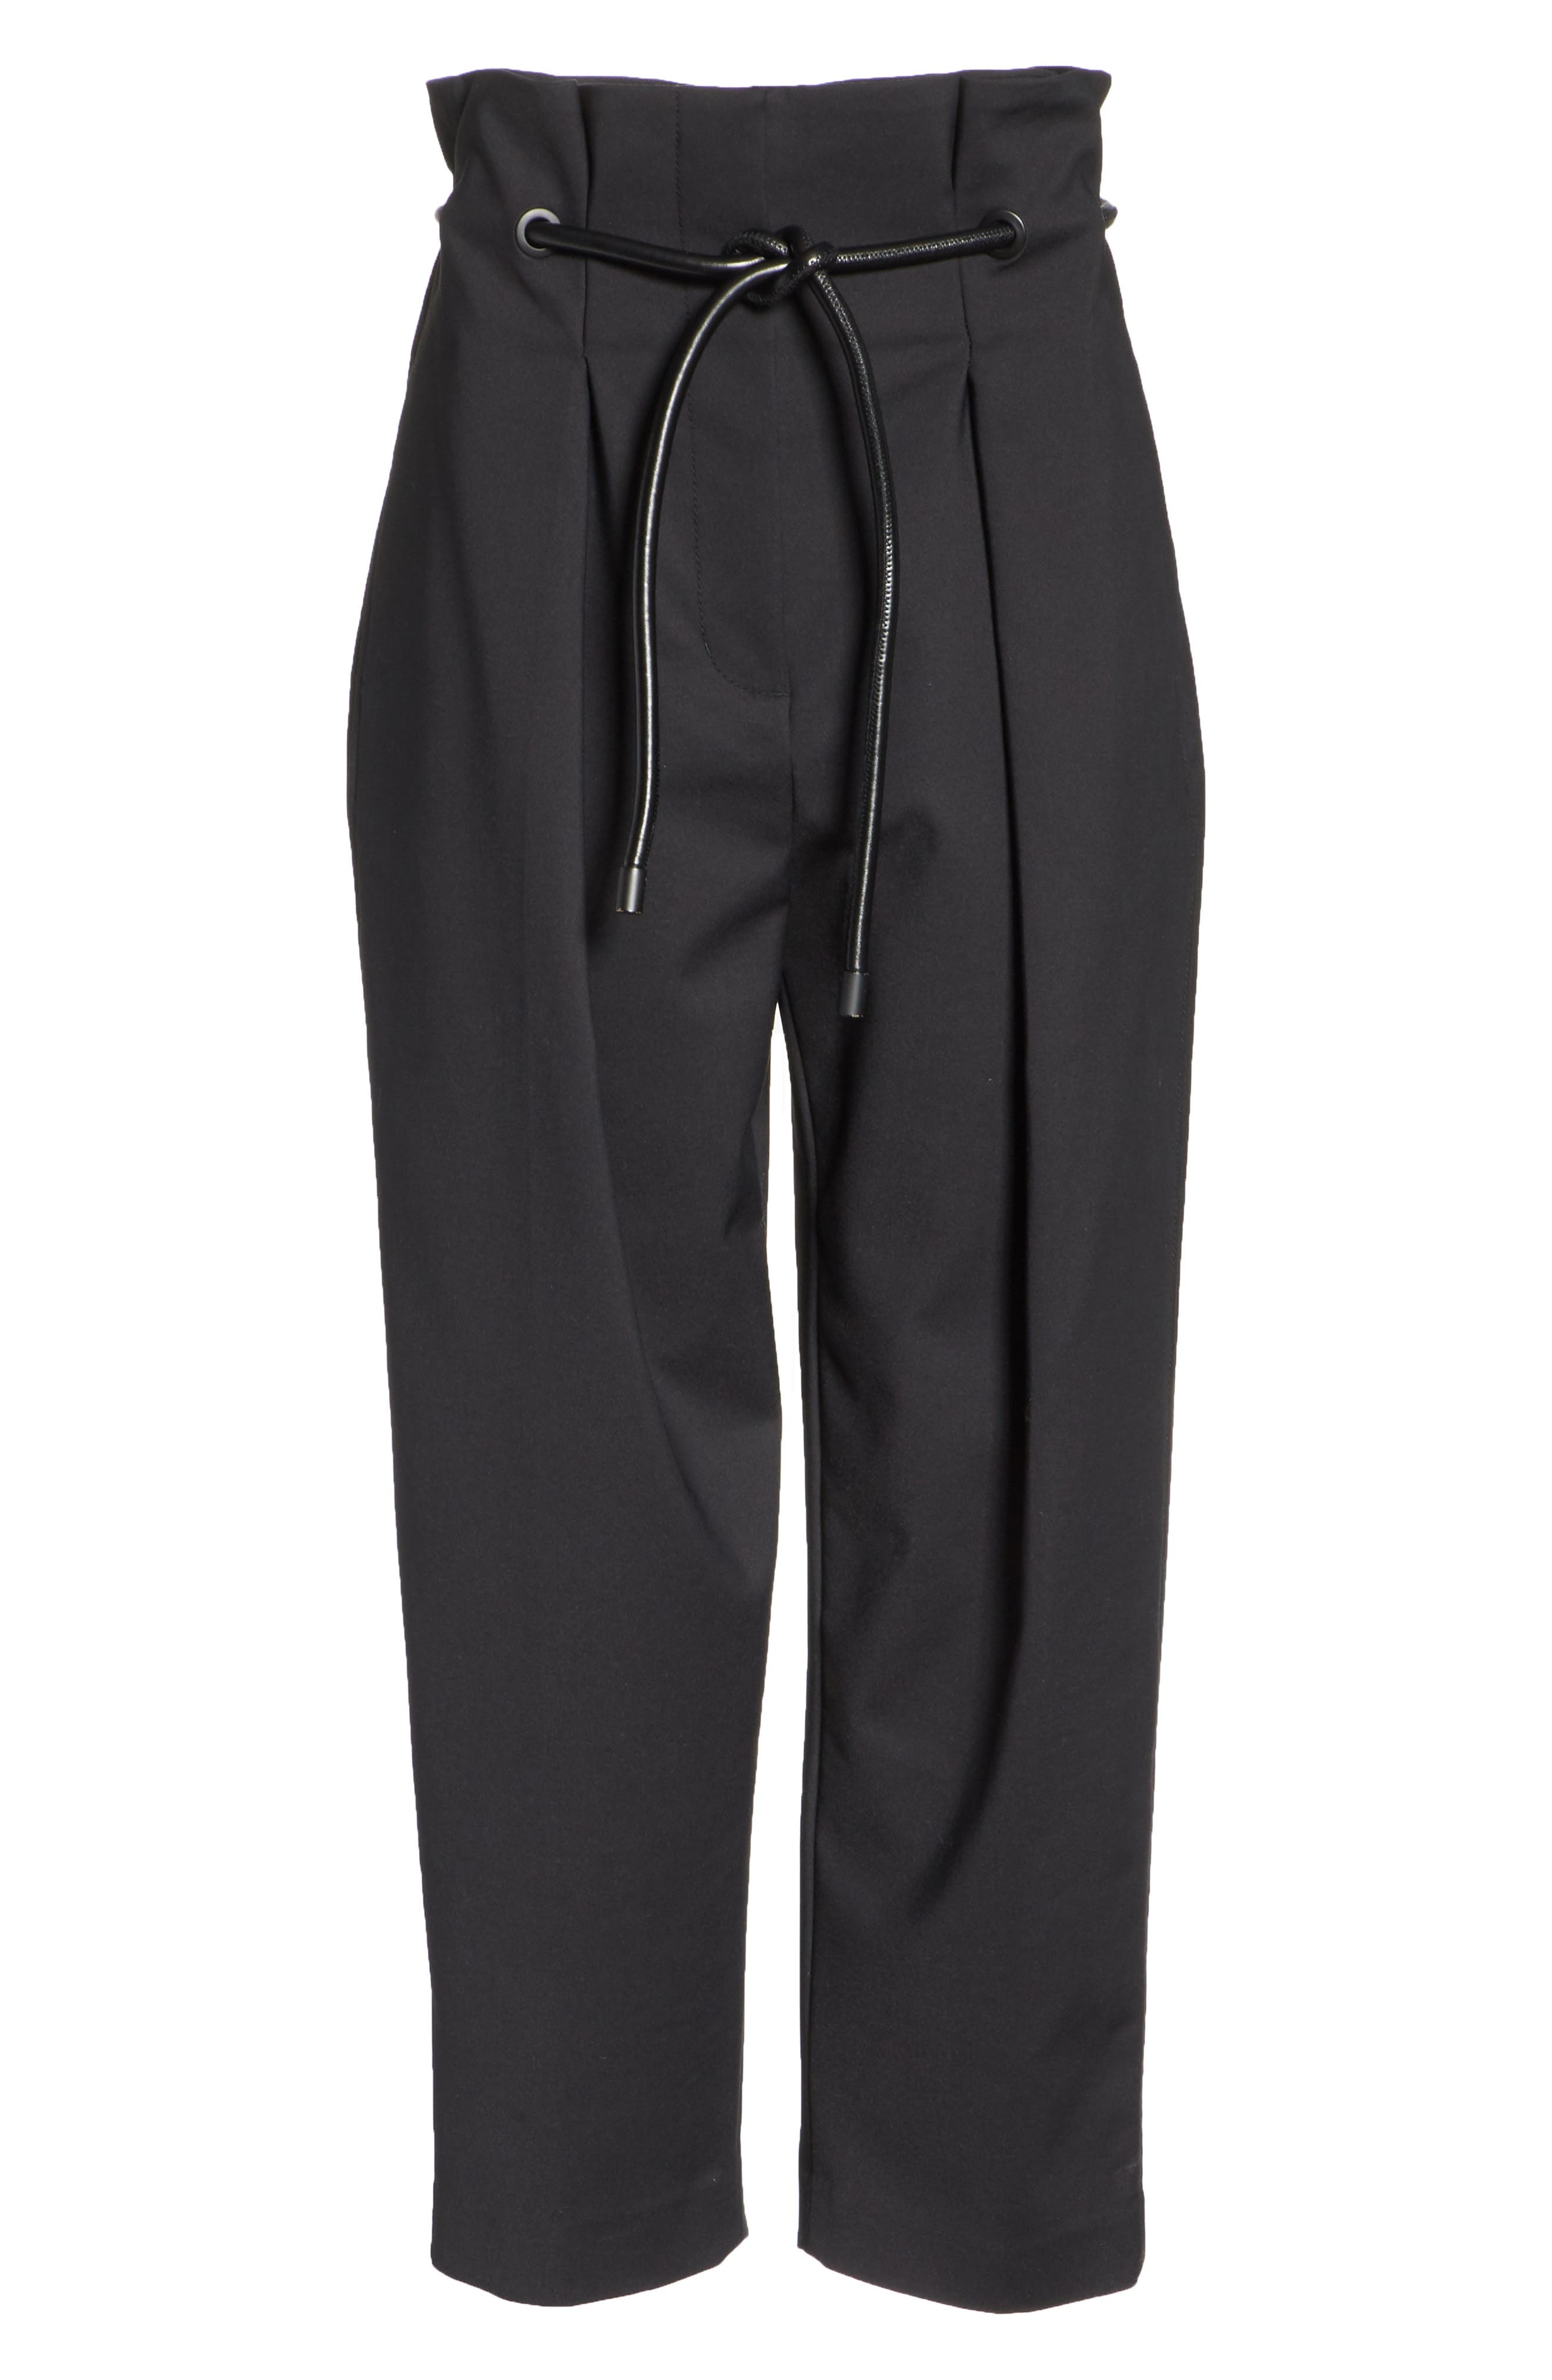 3.1 PHILLIP LIM,                             Origami Crop Flare Pants,                             Alternate thumbnail 6, color,                             001